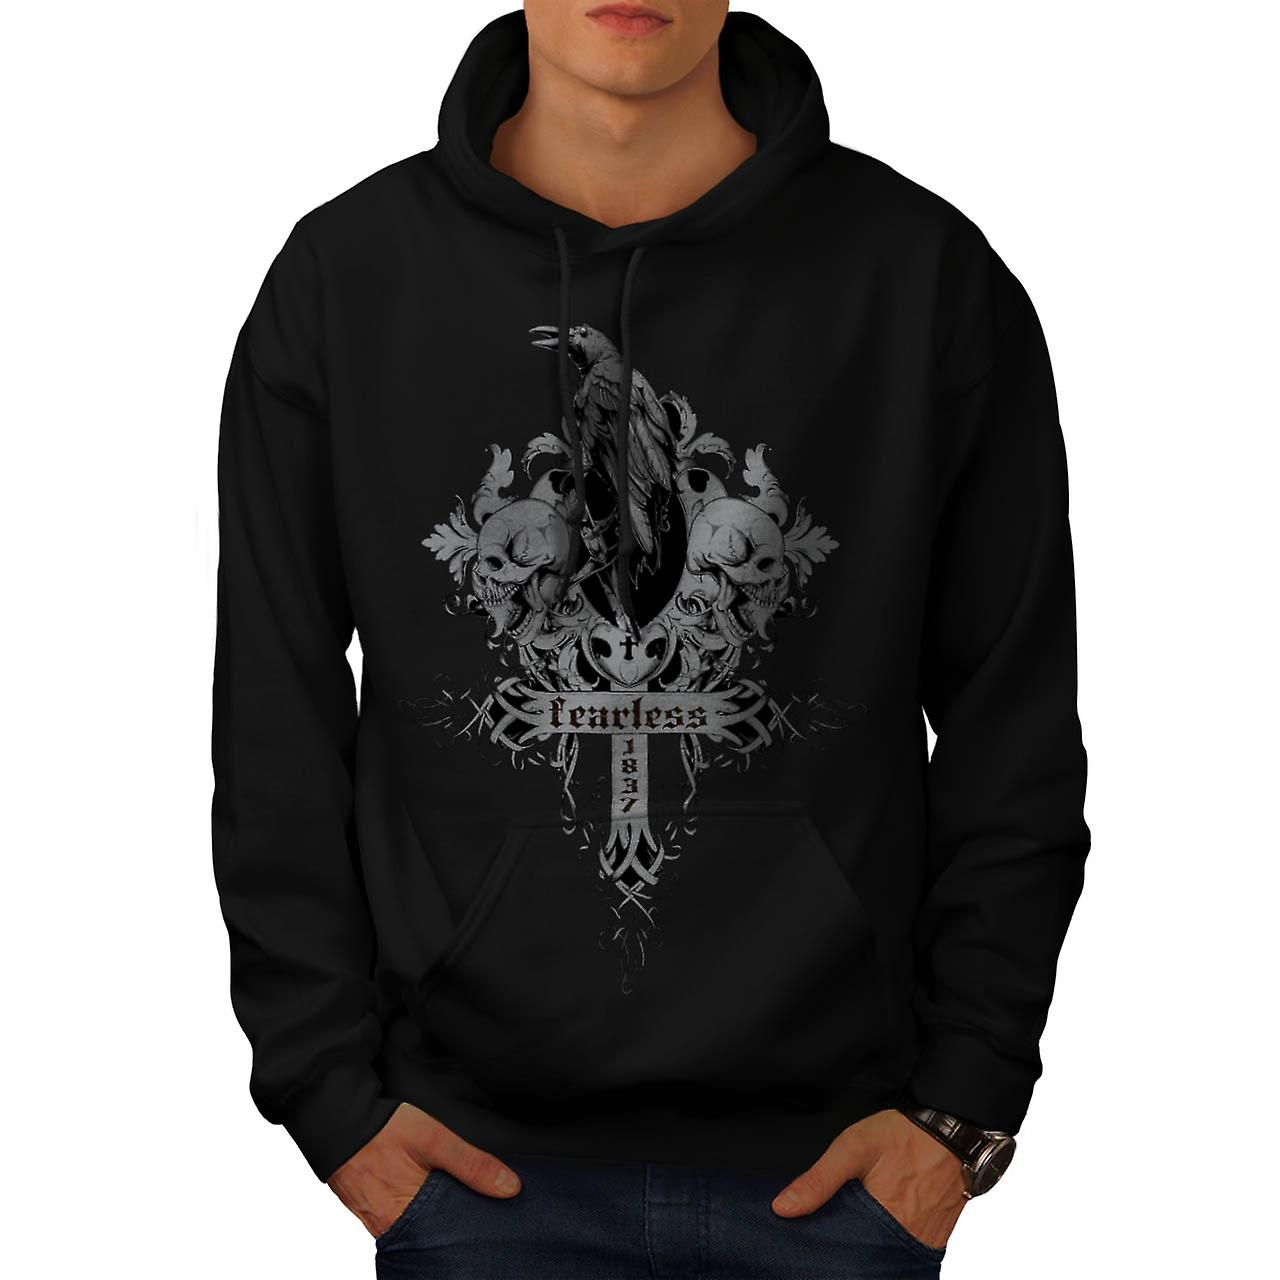 Fearless Death Crow Grave Yard Men Black Hoodie | Wellcoda